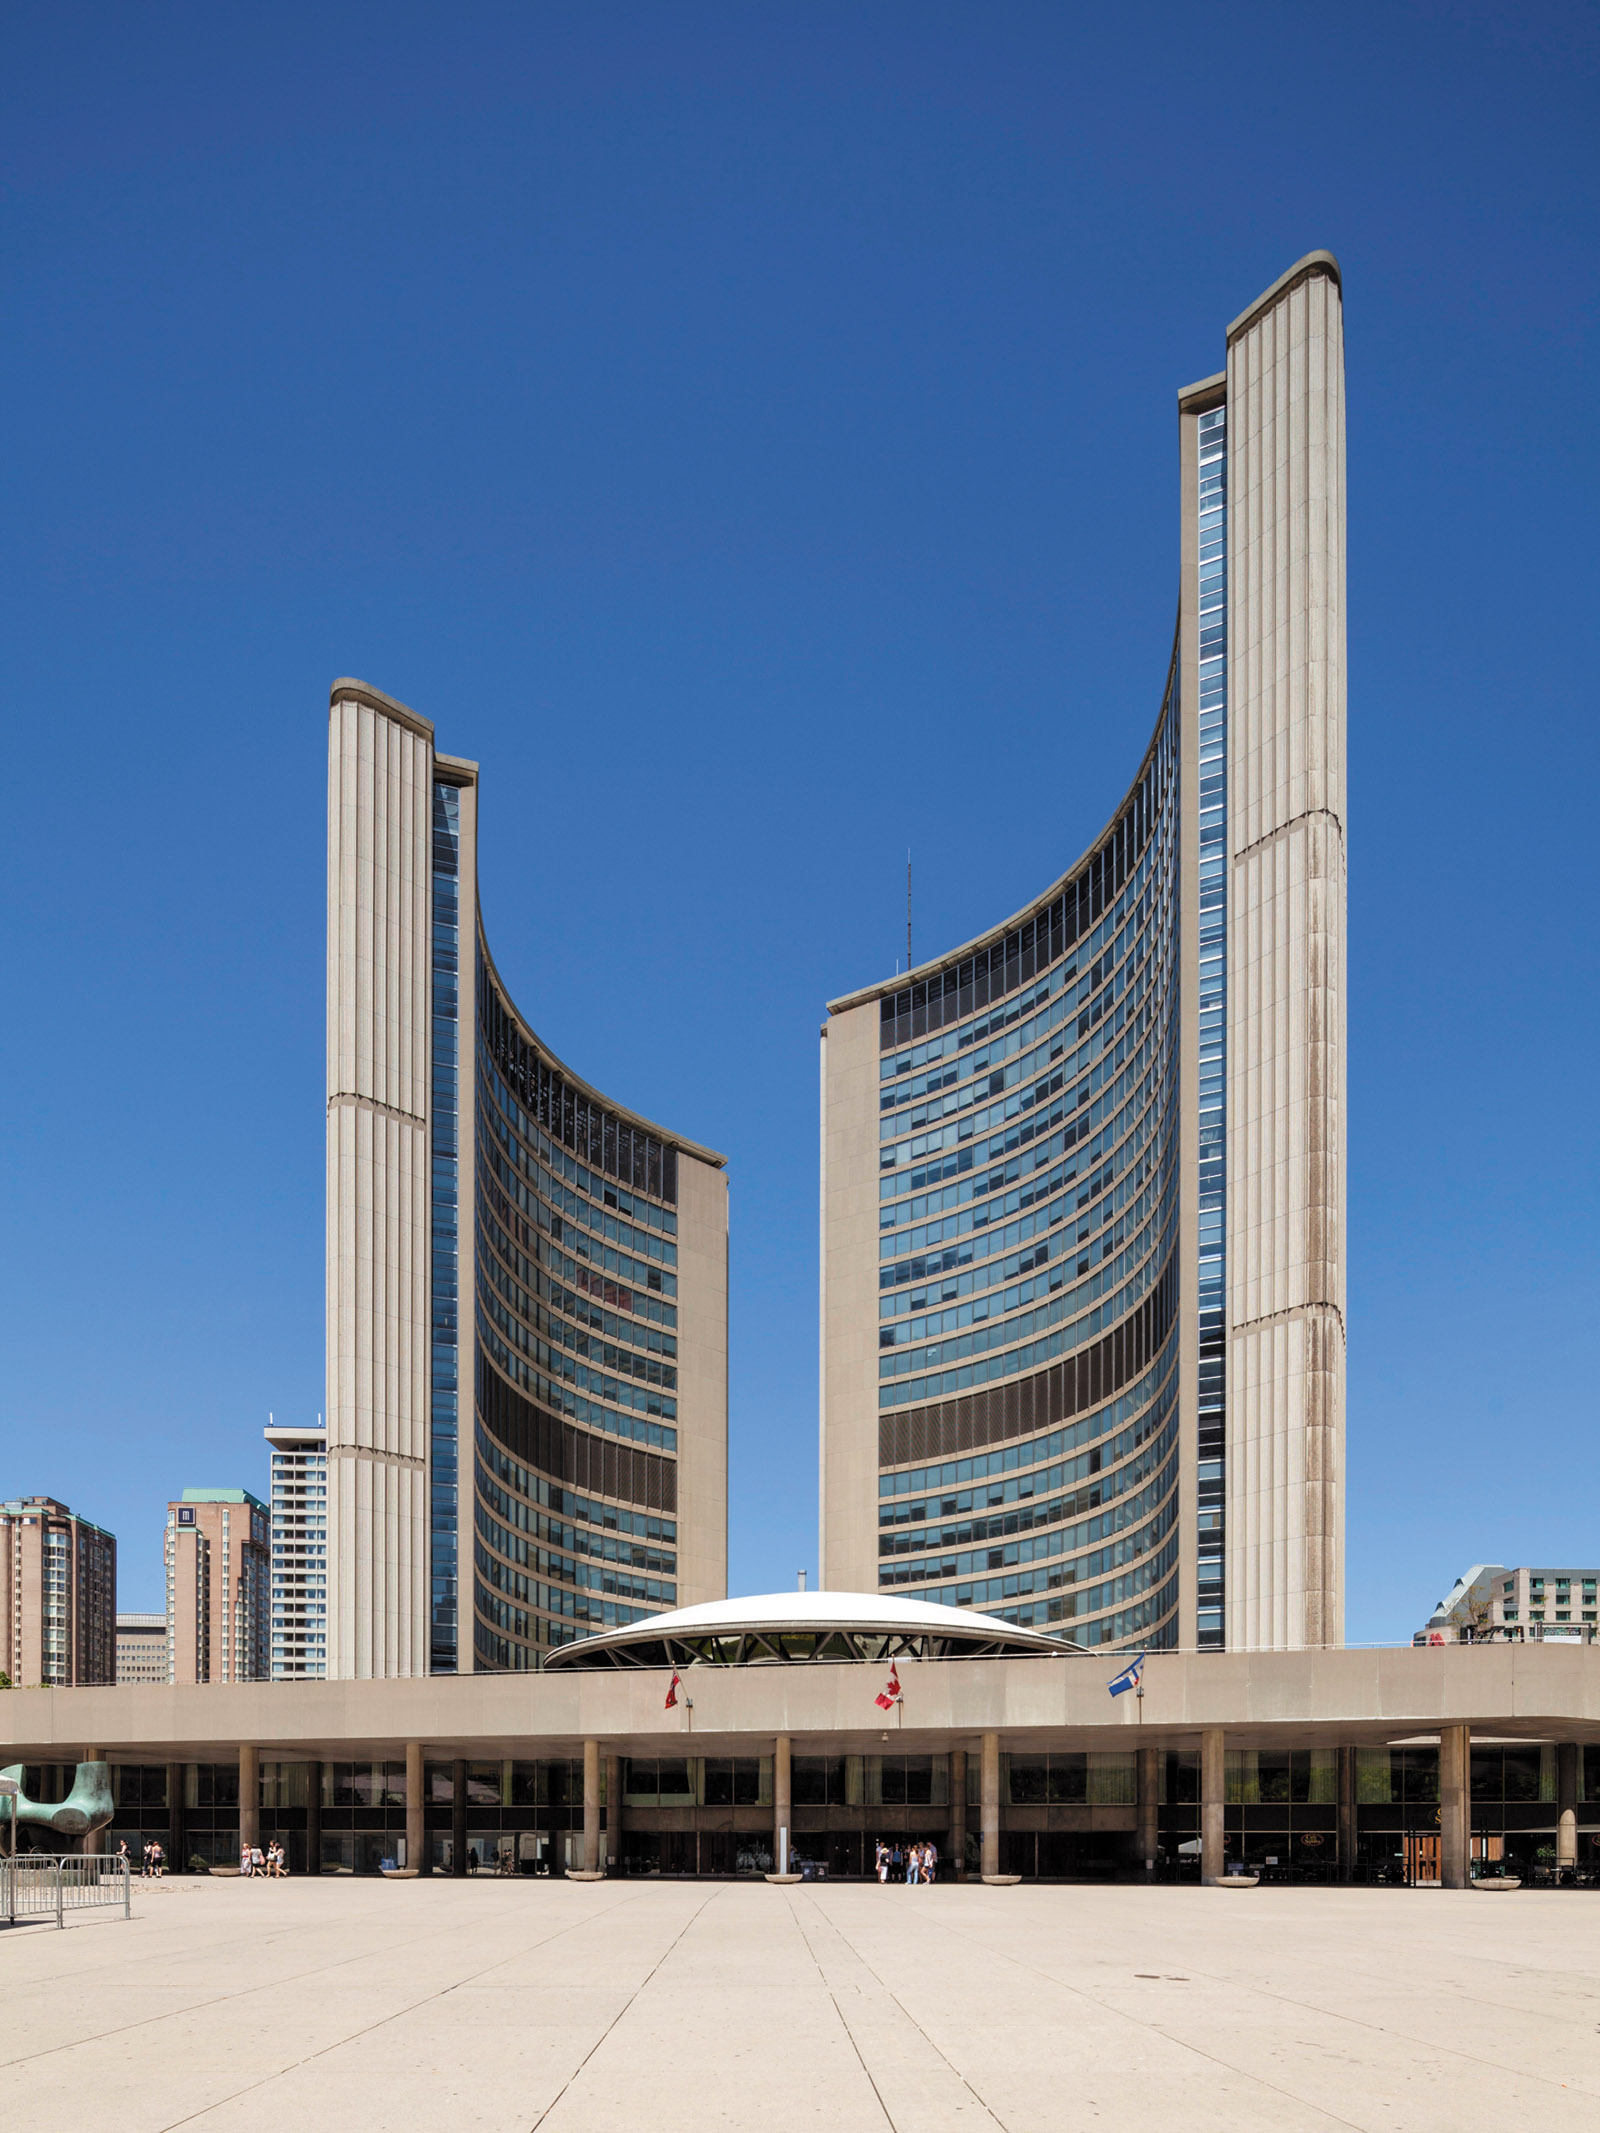 Toronto City Hall and Nathan Phillips Square, designed by Viljo Revell, 1958–1965; from Christopher Beanland's Concrete Concept: Brutalist Buildings Around the World